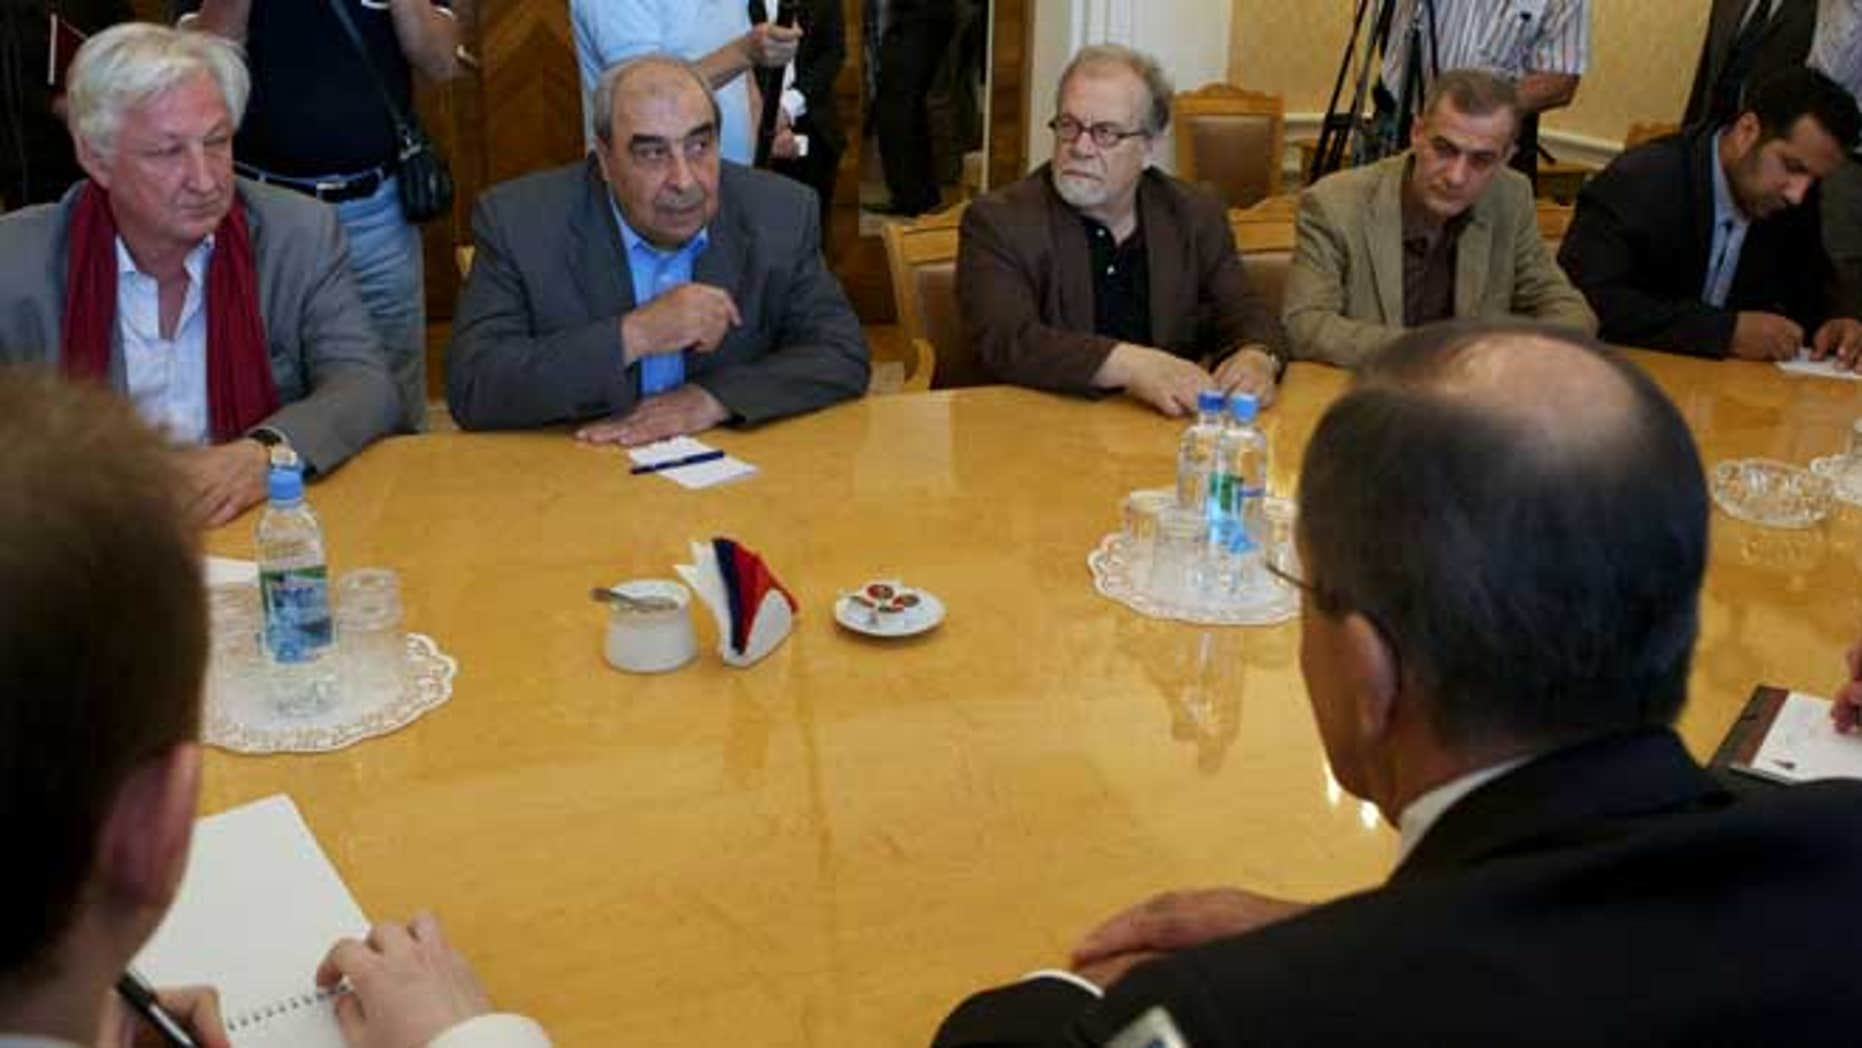 July 9, 2012: Michel Kilo, a Syrian opposition leader and writer, second left, and other unidentified members of a delegation meet with Russian Foreign minister Sergey Lavrov, foreground right, in Moscow, Russia.